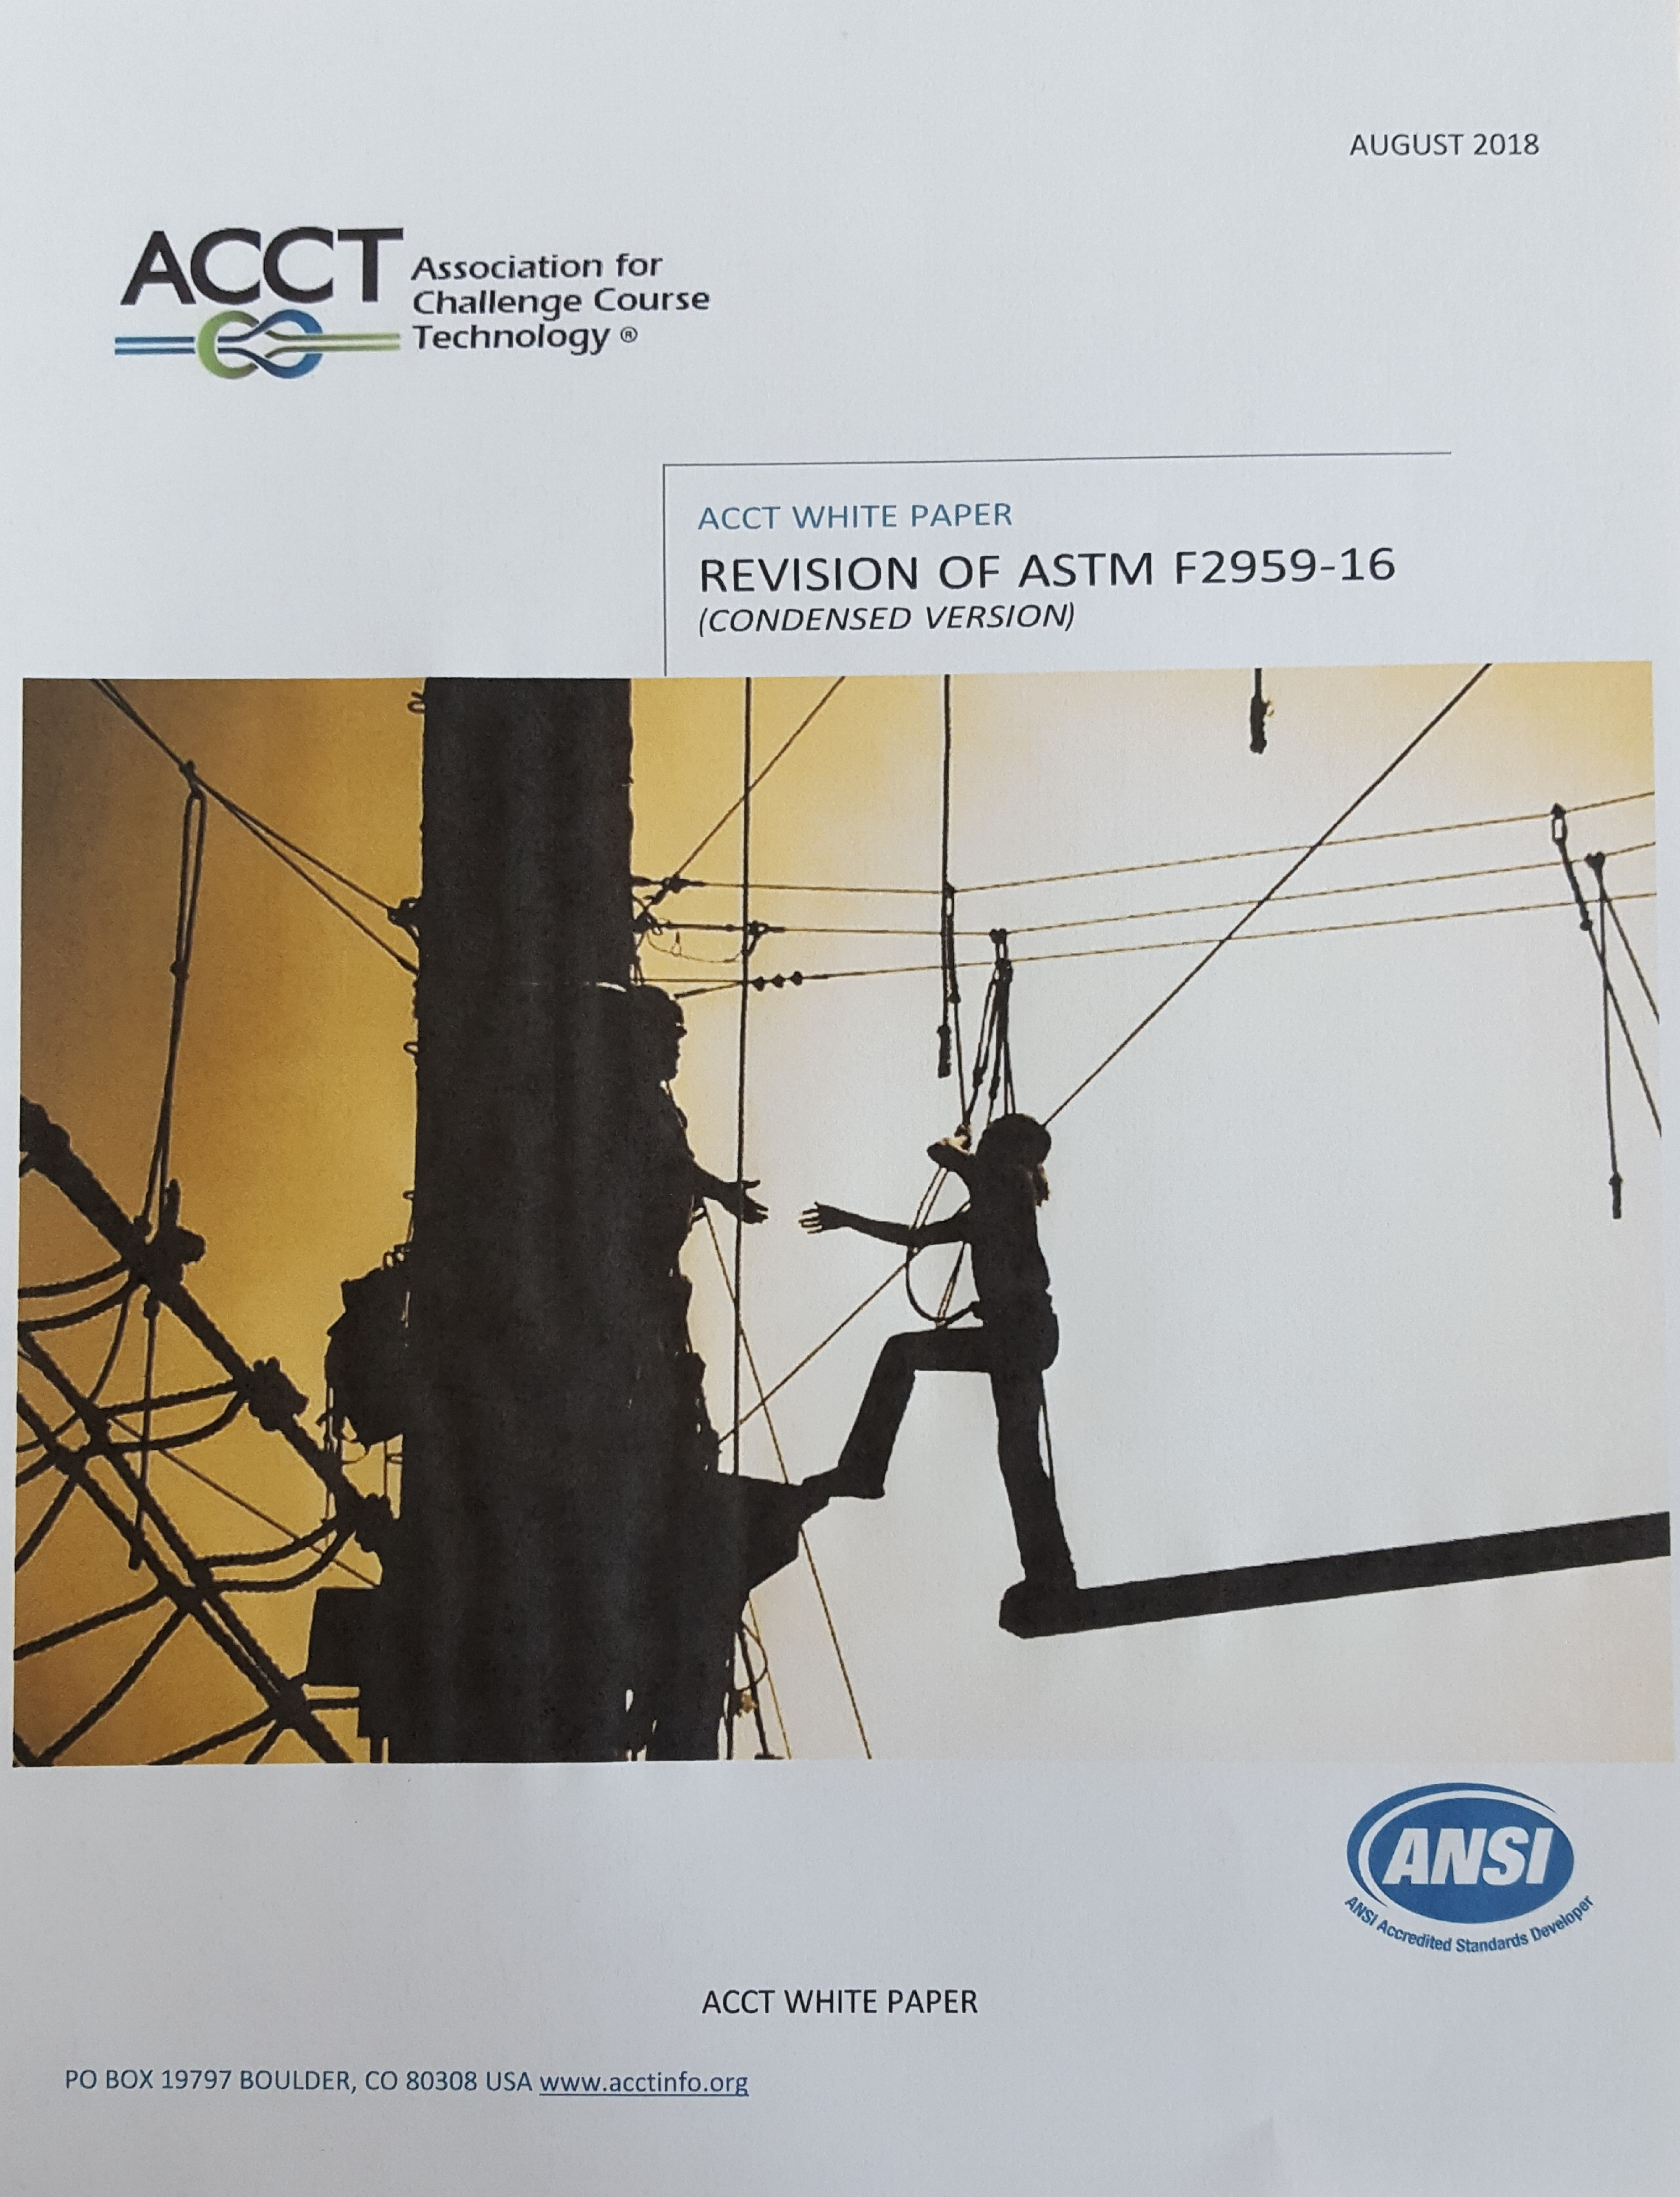 Association For Challenge Course Technology Ansi Wiring Diagram Acct White Papers Accepting Applications 2019 Board Elections